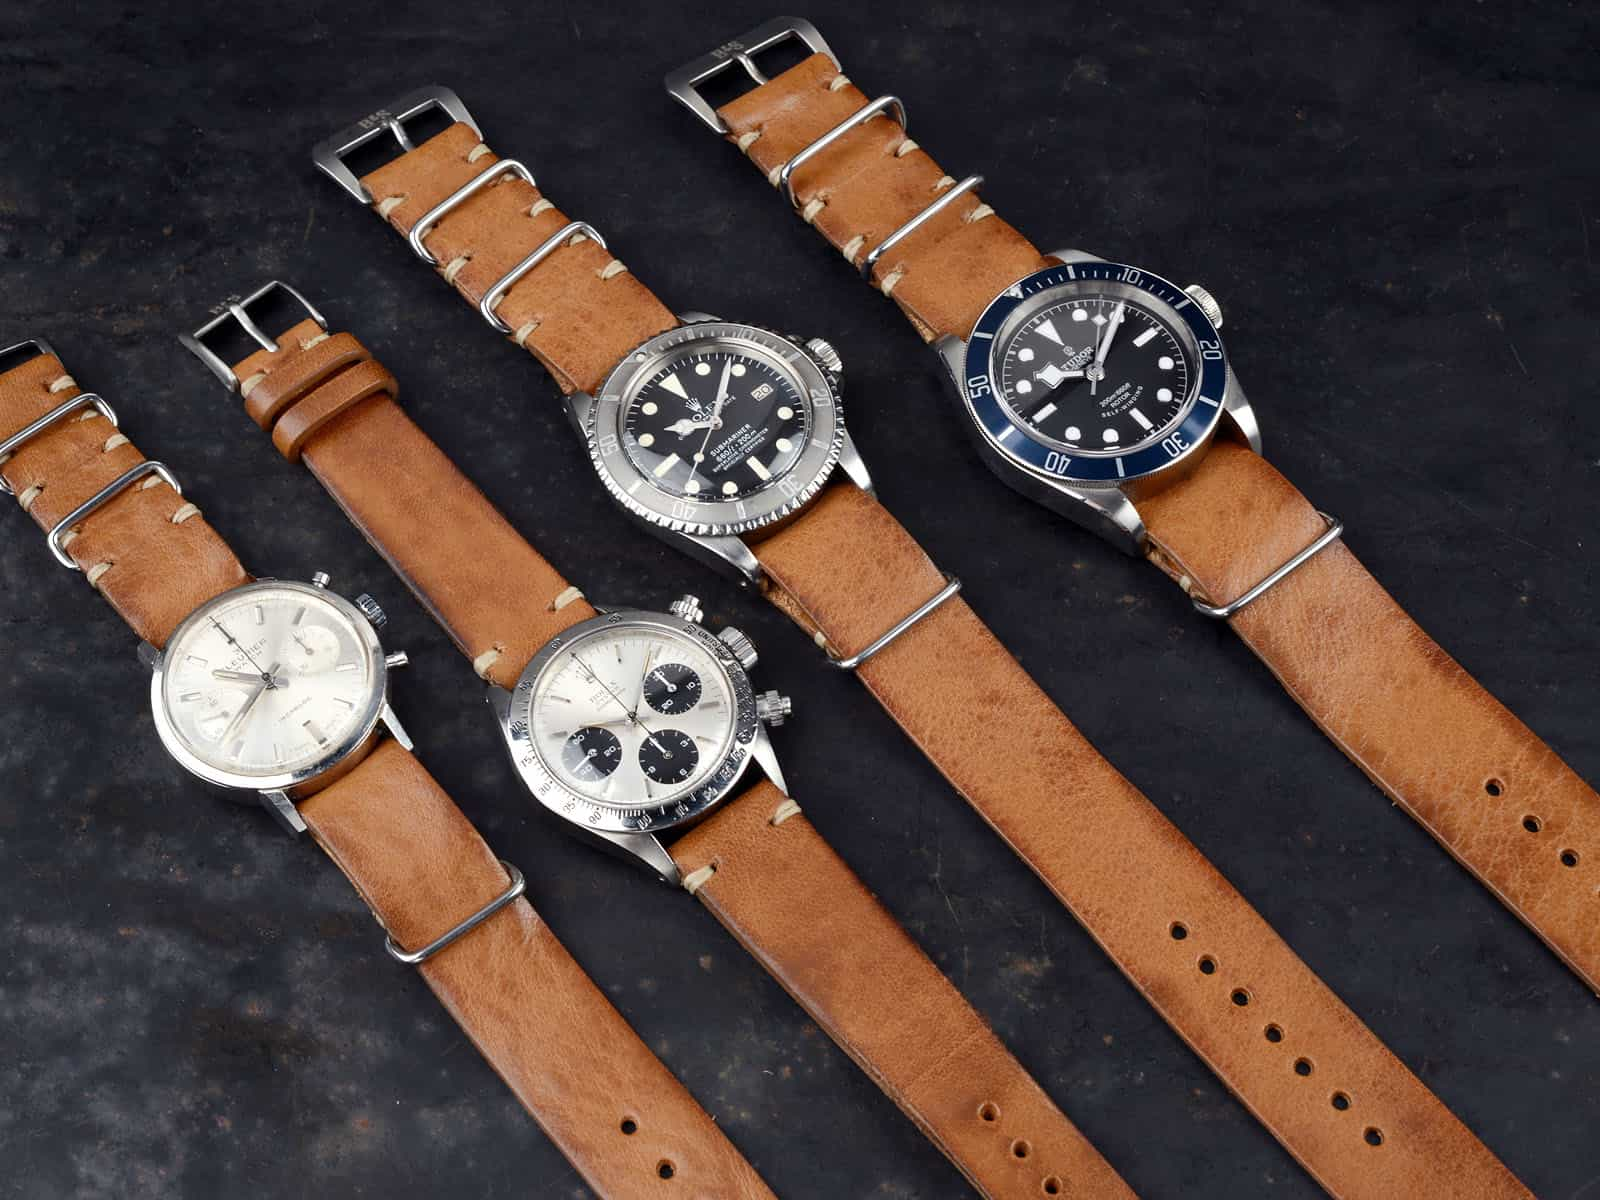 Current NATO Straps Are Almost Identical to Originals